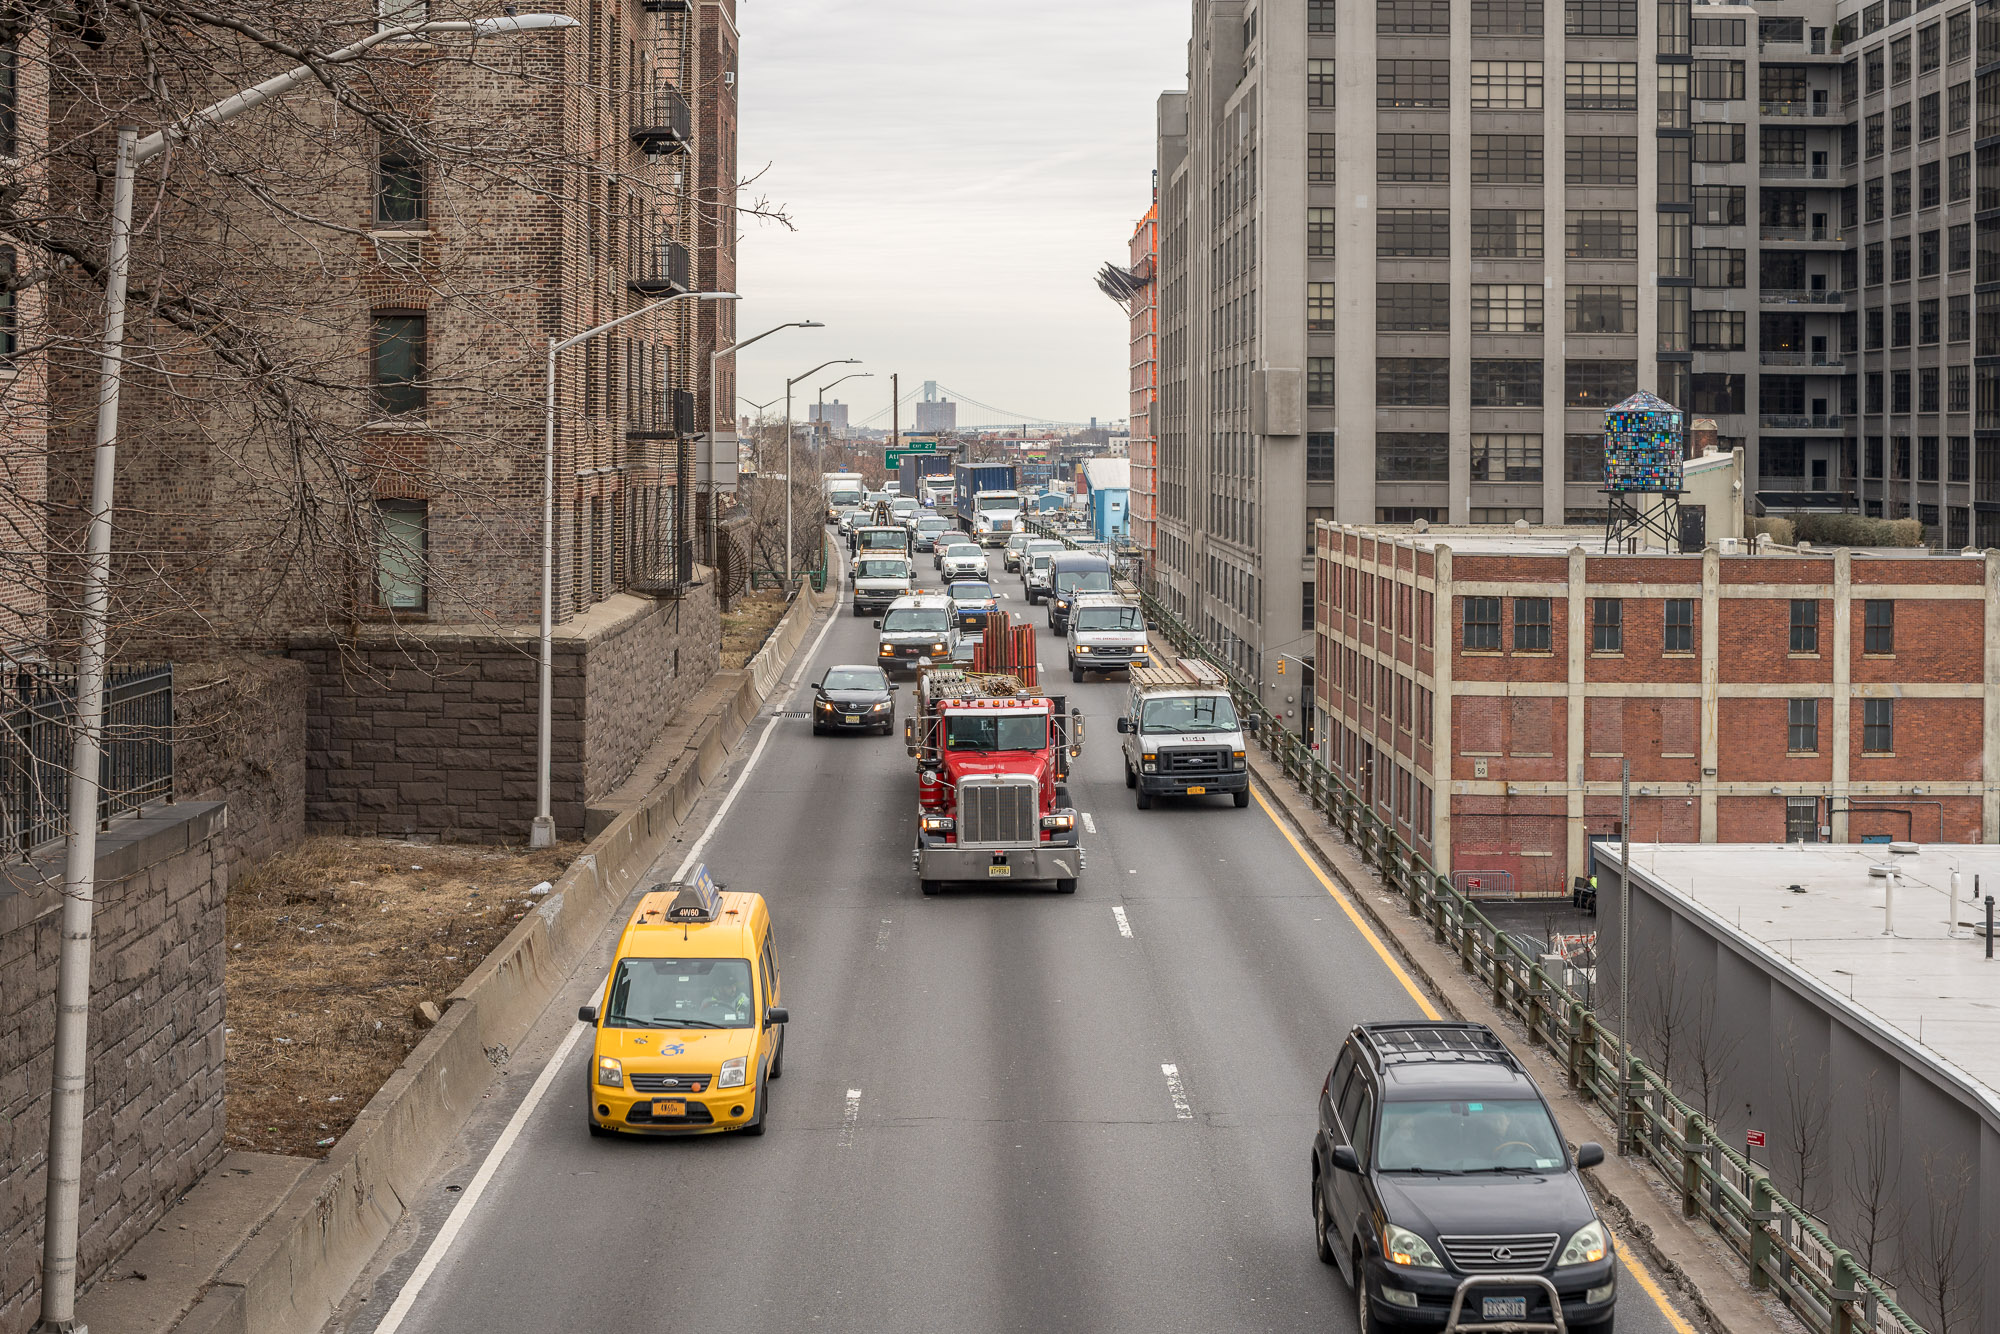 A yellow cab, a red truck, and several other cars driving on the Brooklyn Heights section of the Brooklyn Queens Expressway.